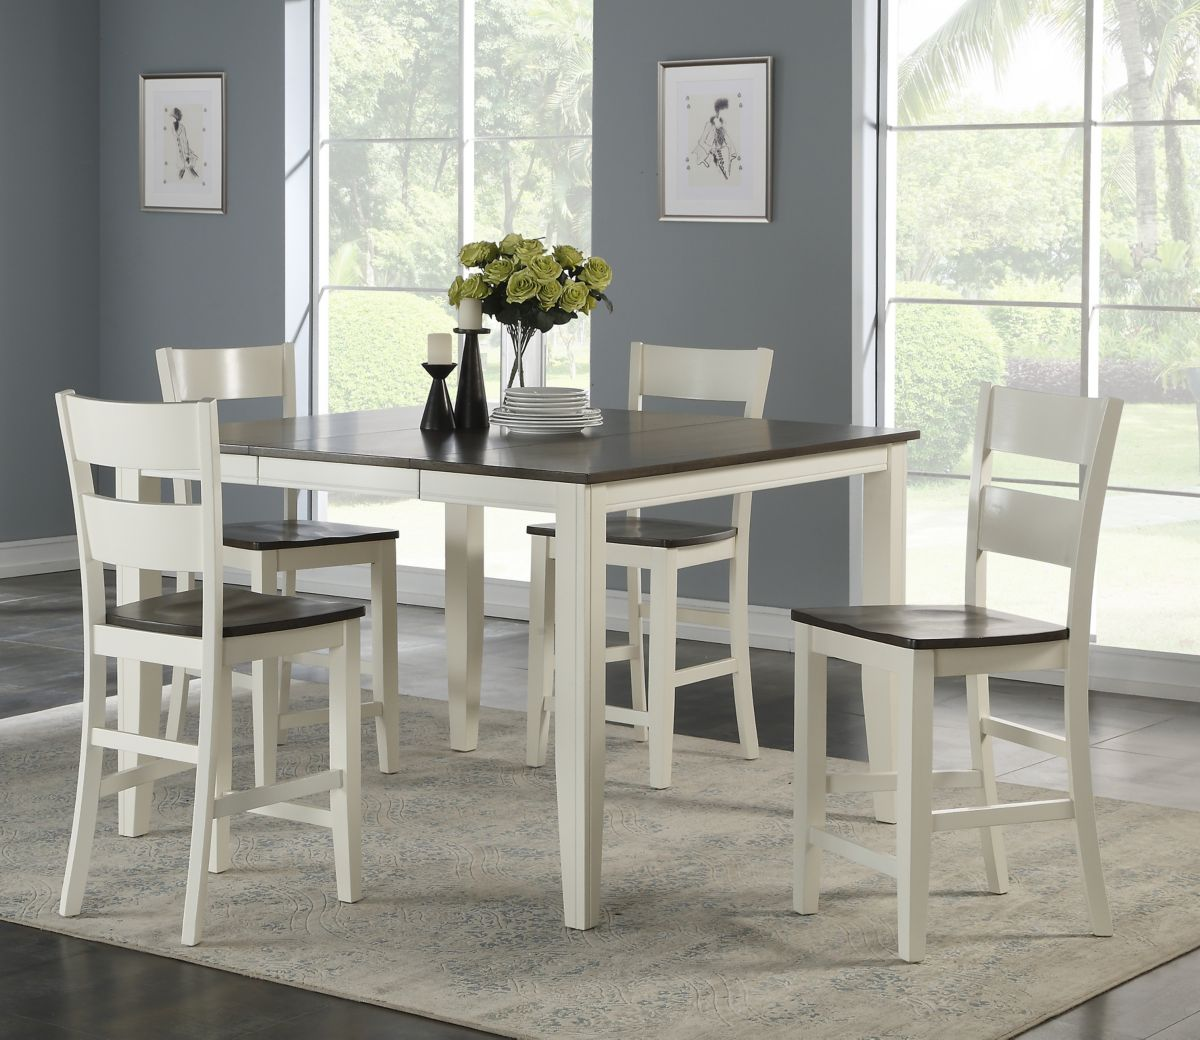 Gray 5 Piece Counter Height Dining Set